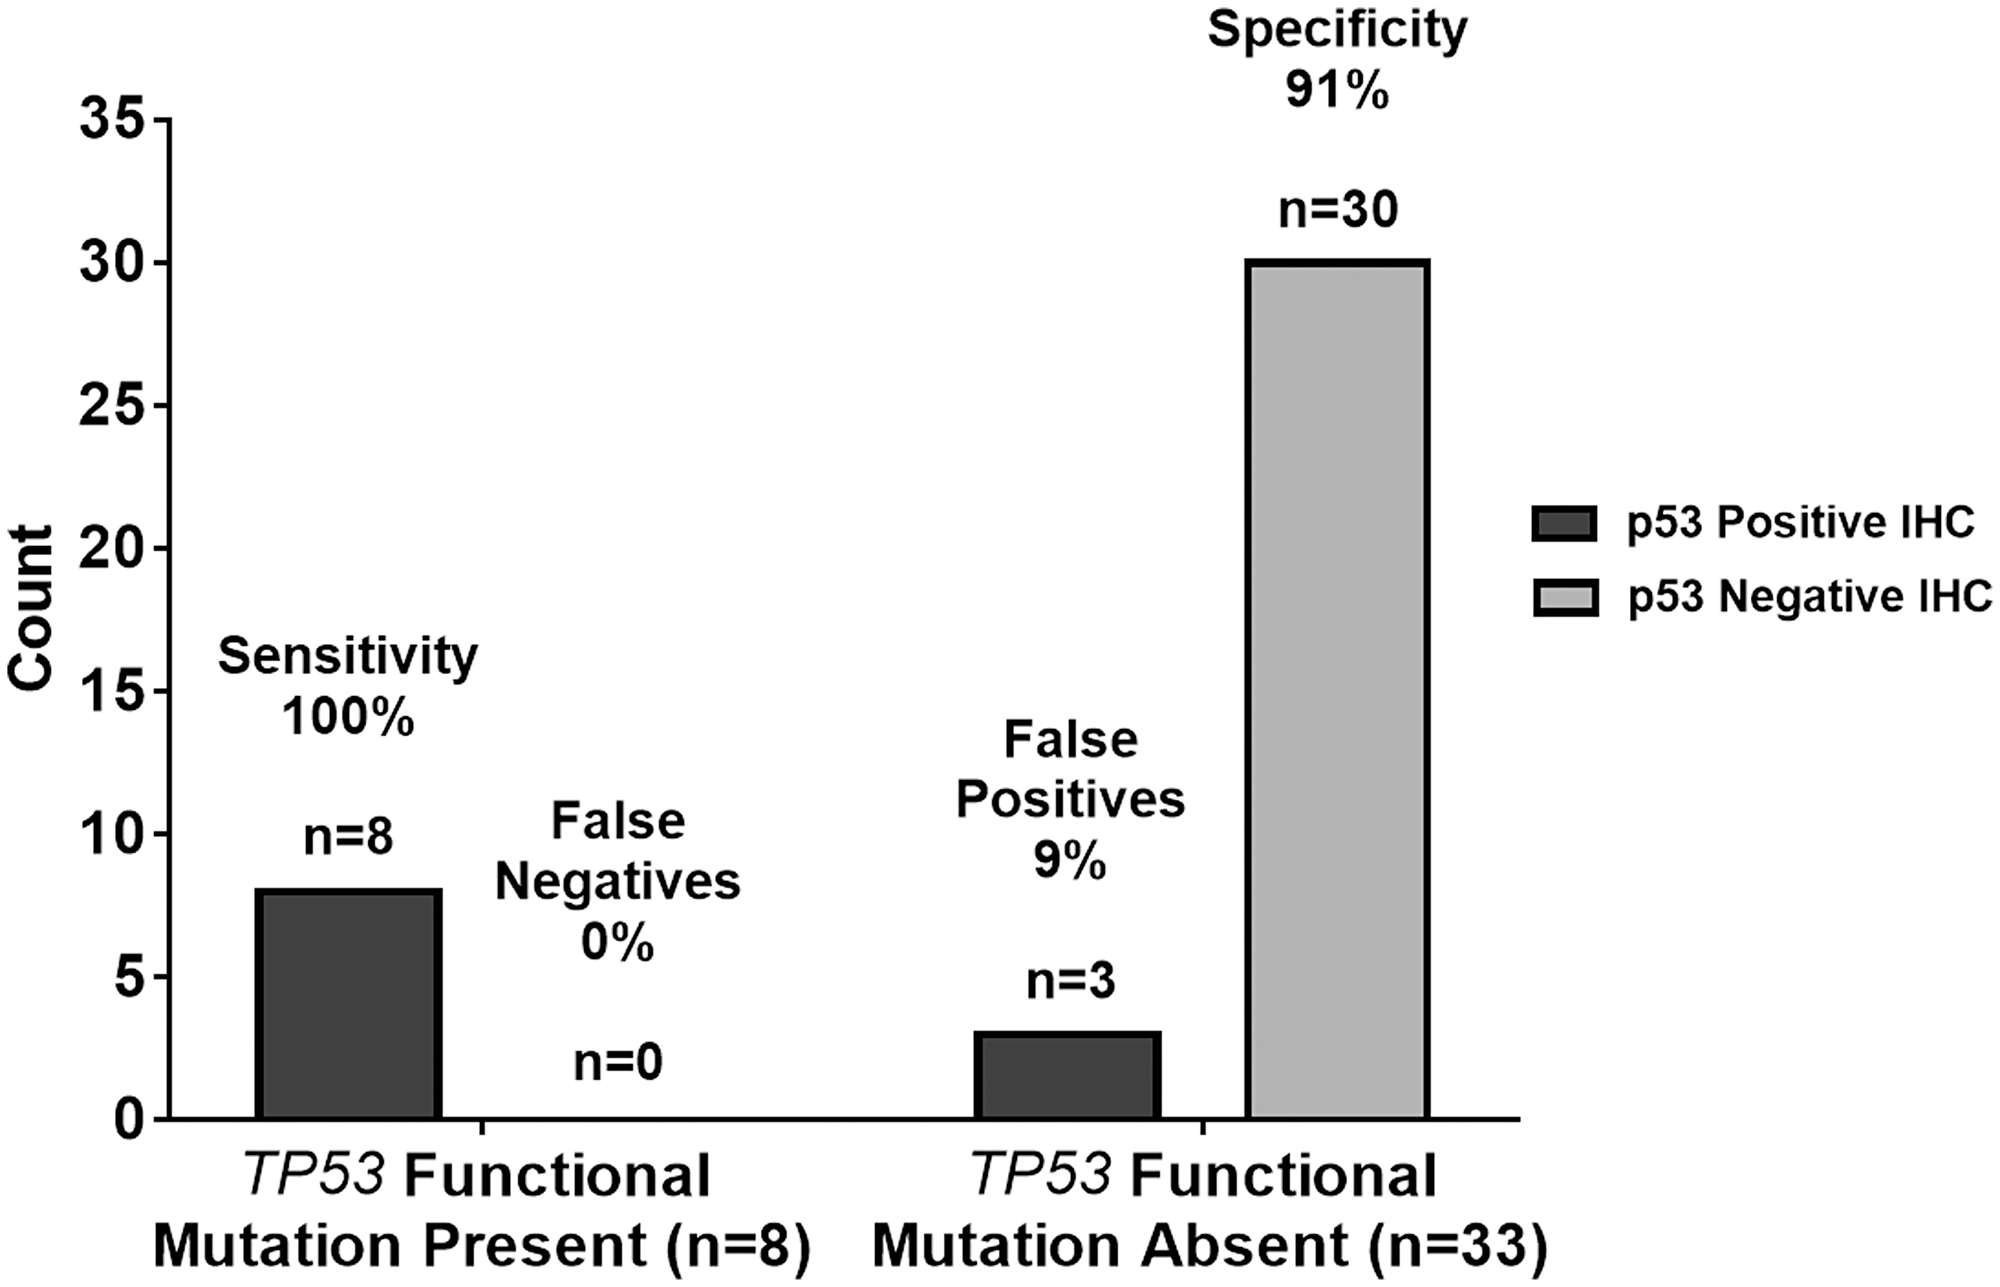 Graphical summary of TP53 genetic sequencing results versus p53 IHC staining test results with ≥40% threshold.